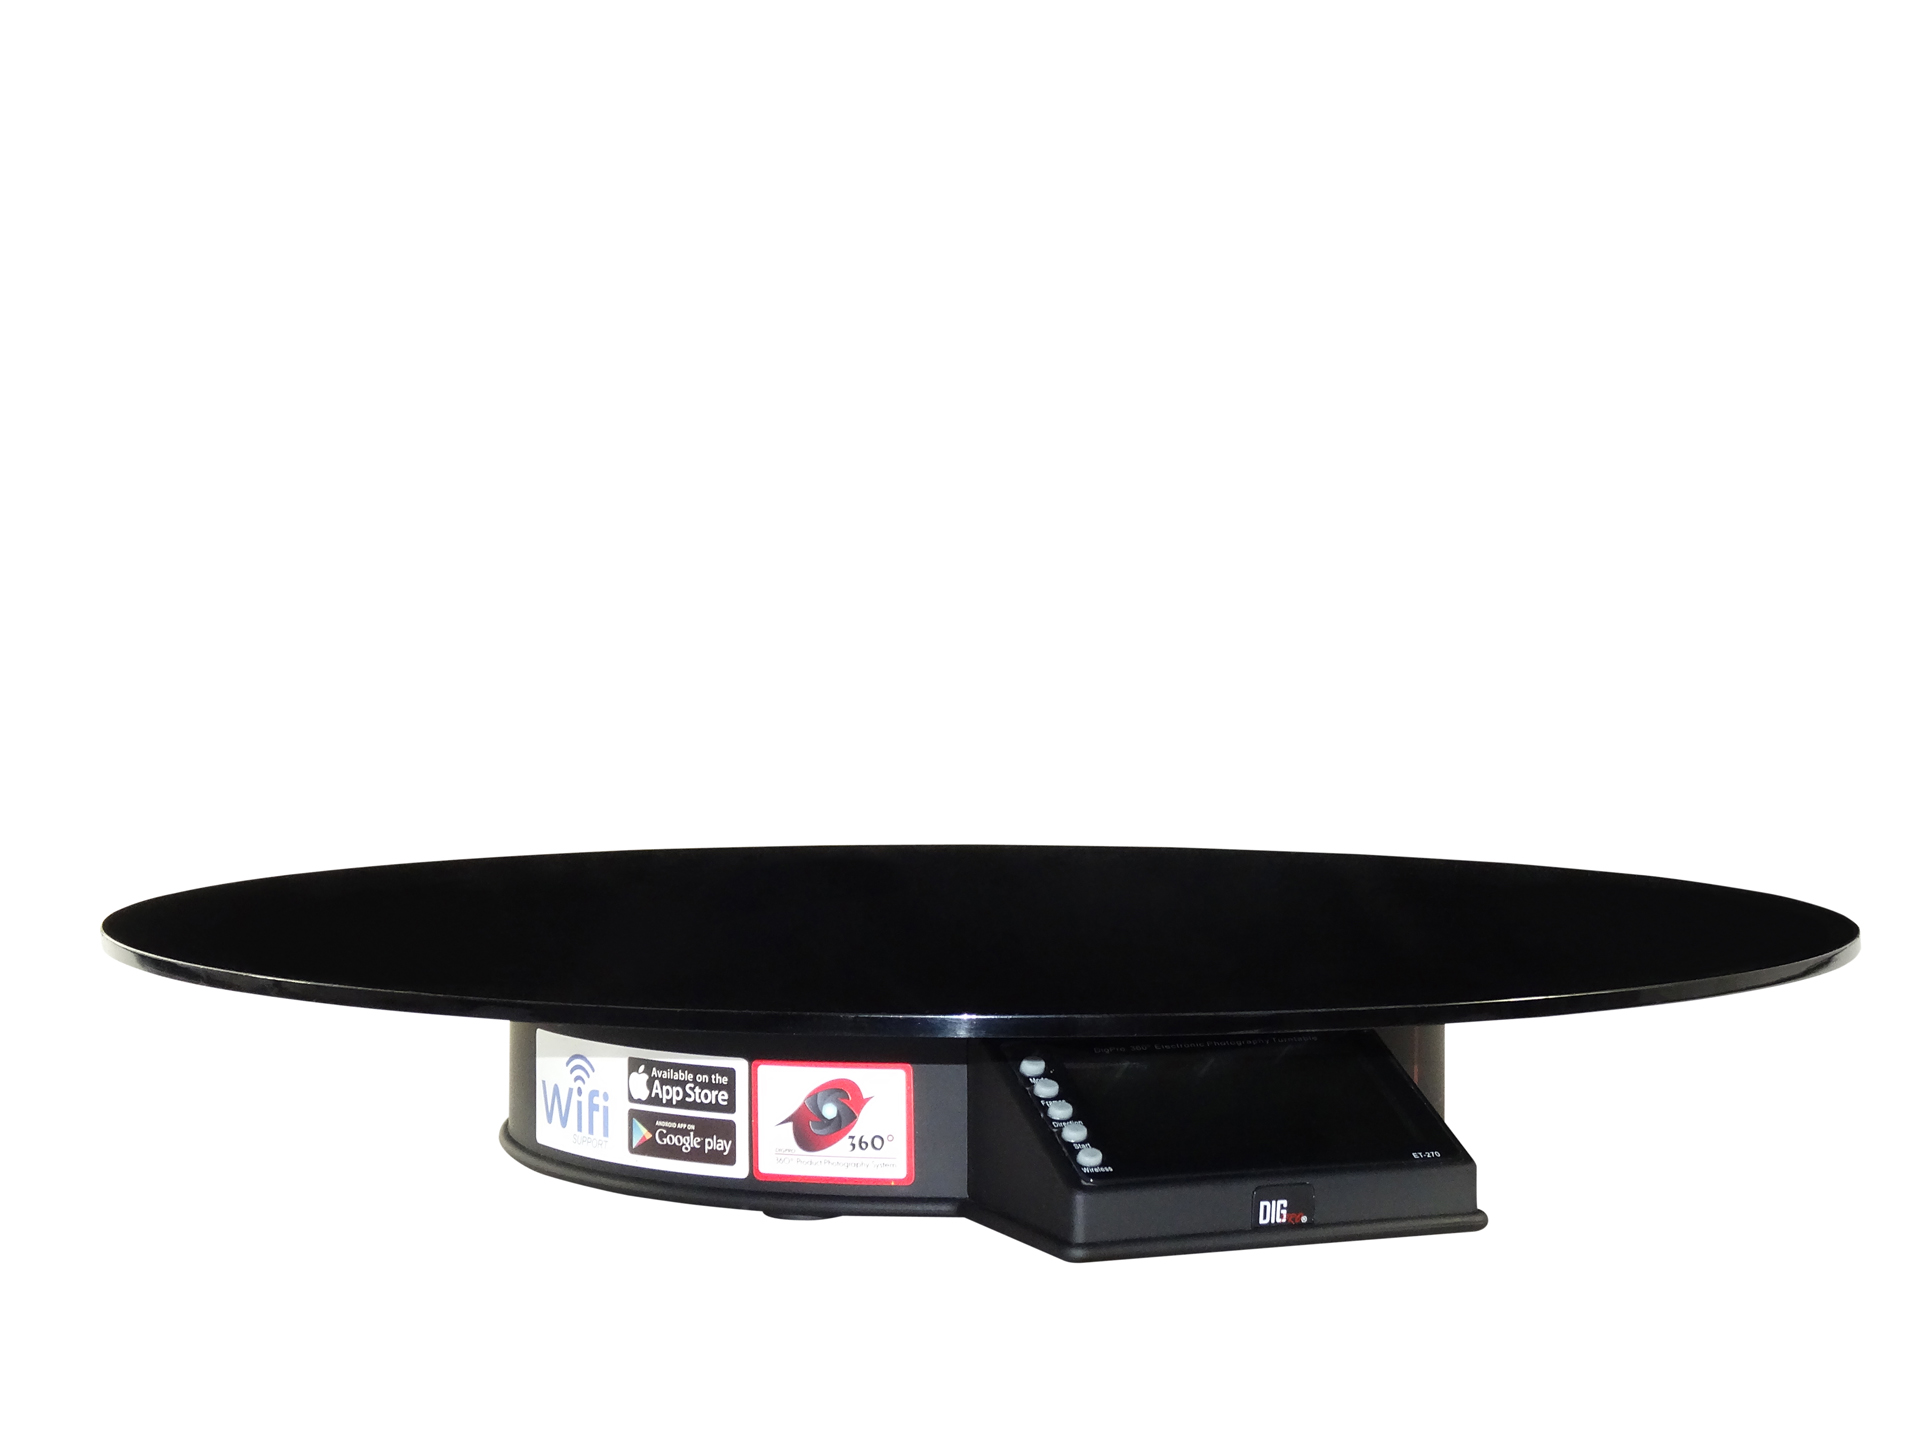 DigPro 360 45cm Reflection plate (Glossy Black)